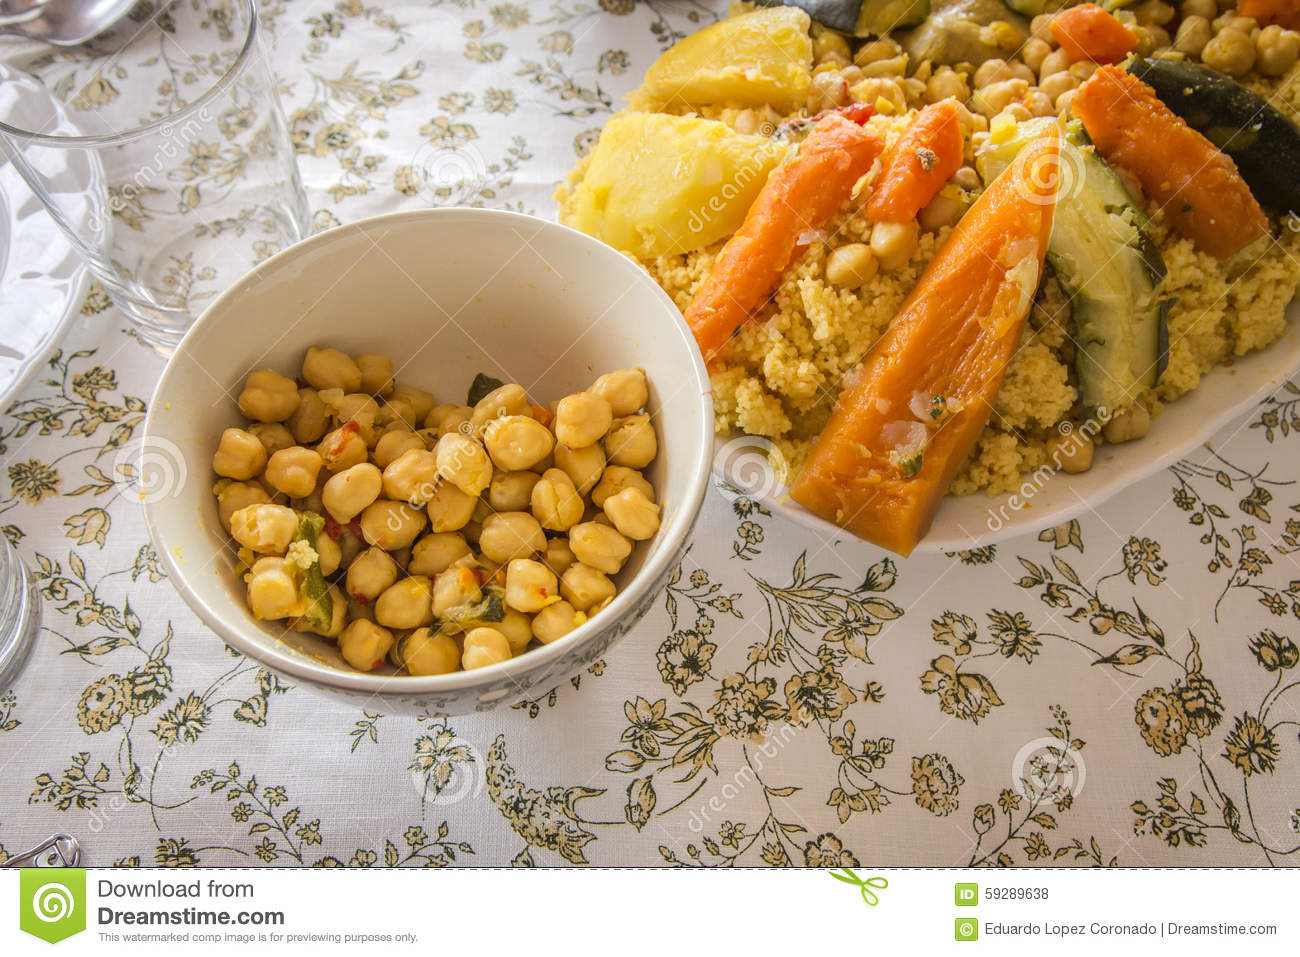 Typical moroccan and arabic food royalty free stock photo for Arabic cuisine dishes